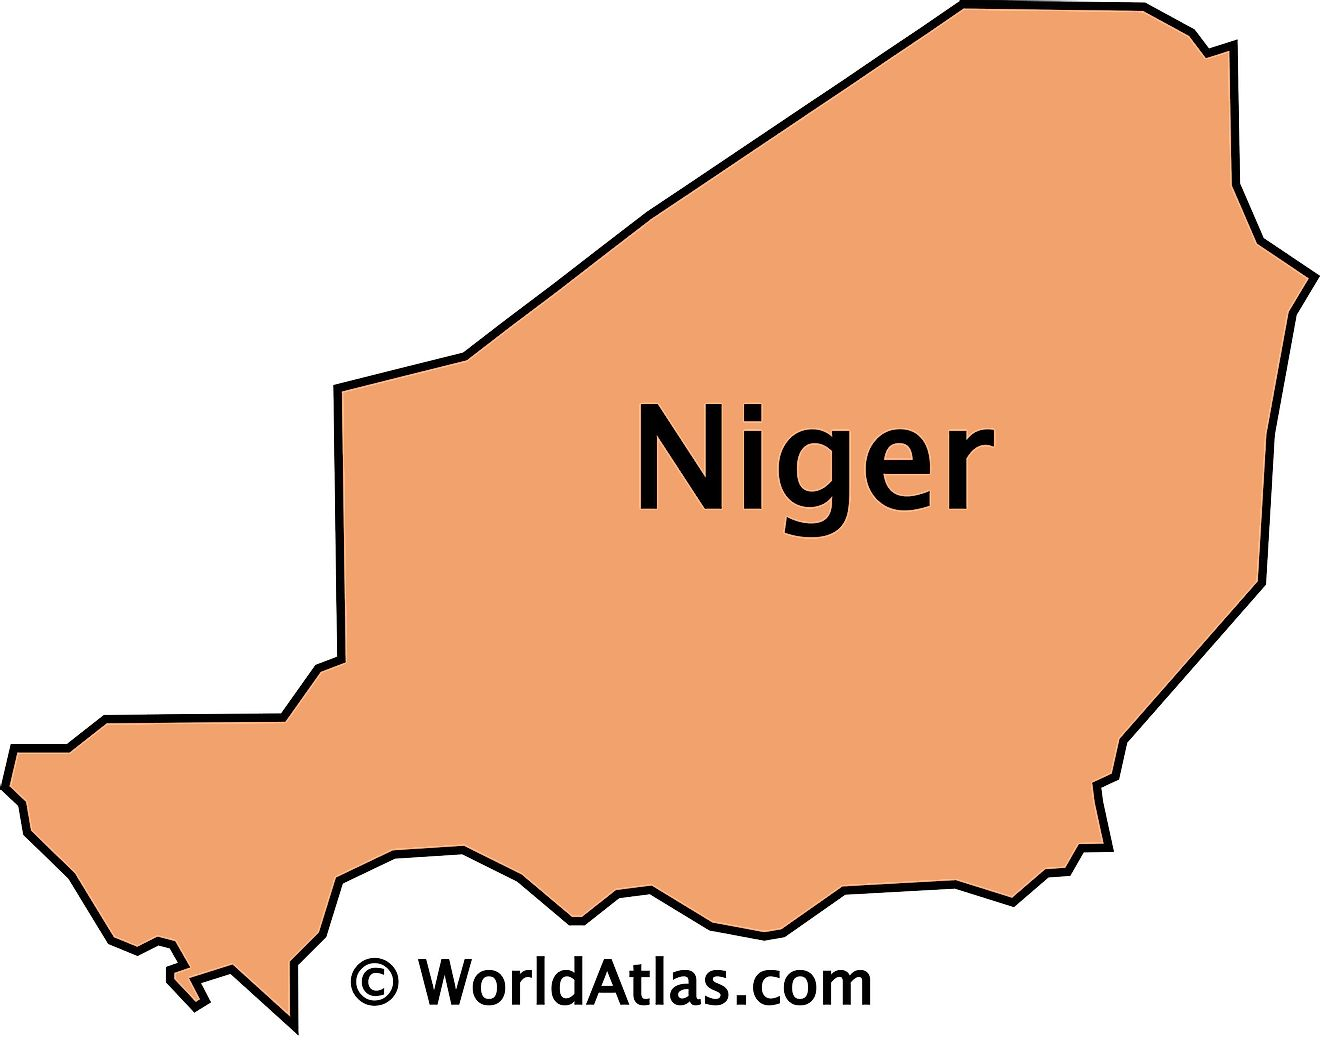 The Outline Map of Niger